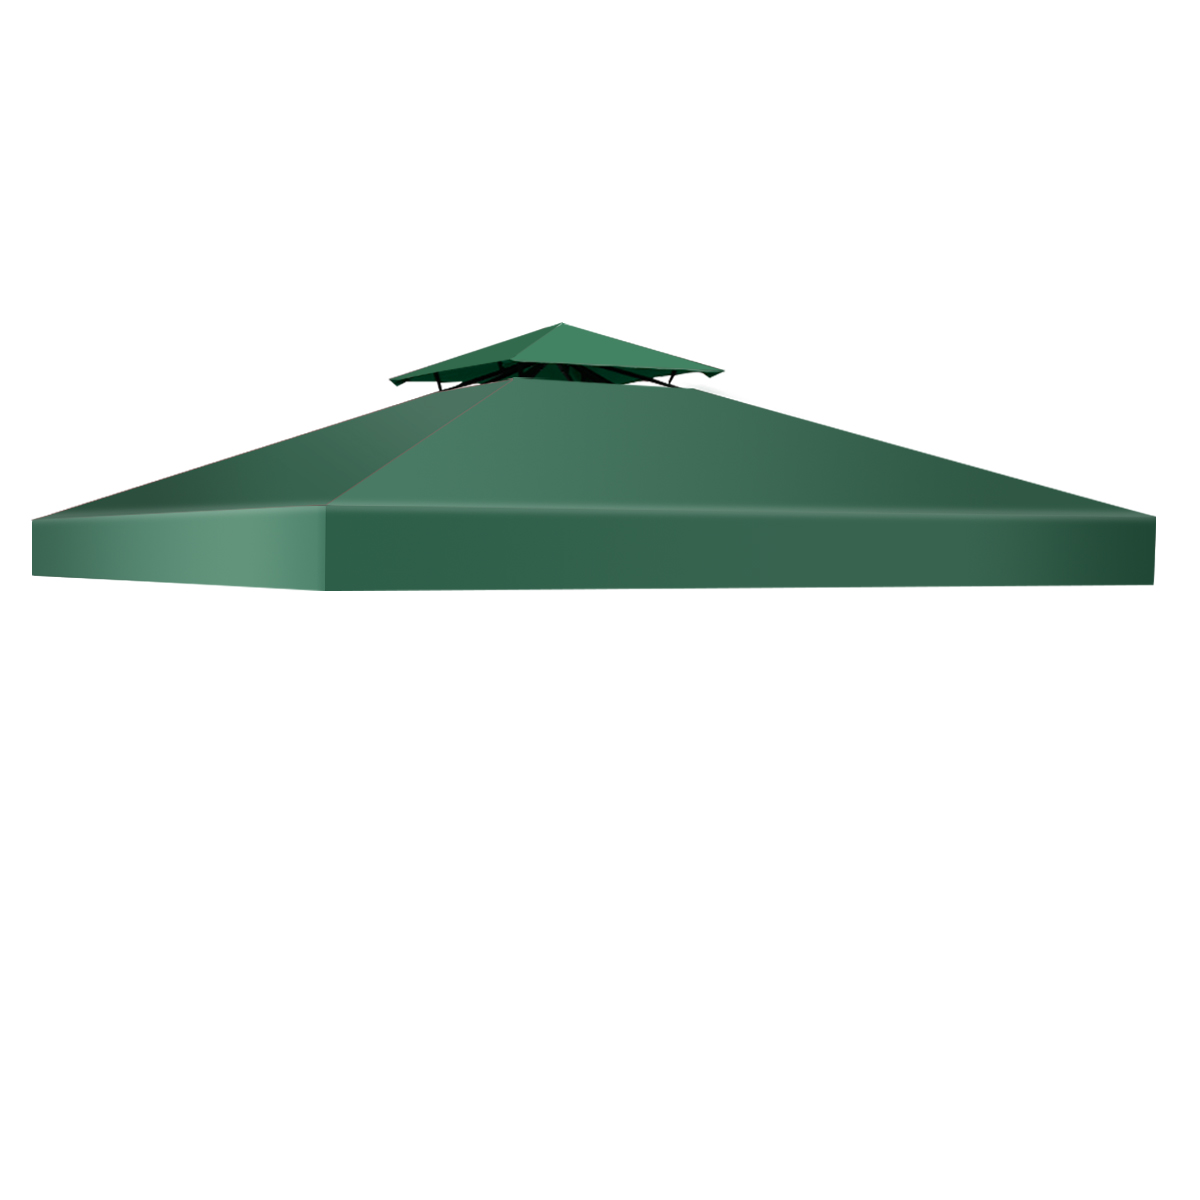 10-039-X-10-039-Gazebo-Top-Cover-Patio-Canopy-Replacement-1-Tier-or-2-Tier-3-Color thumbnail 49